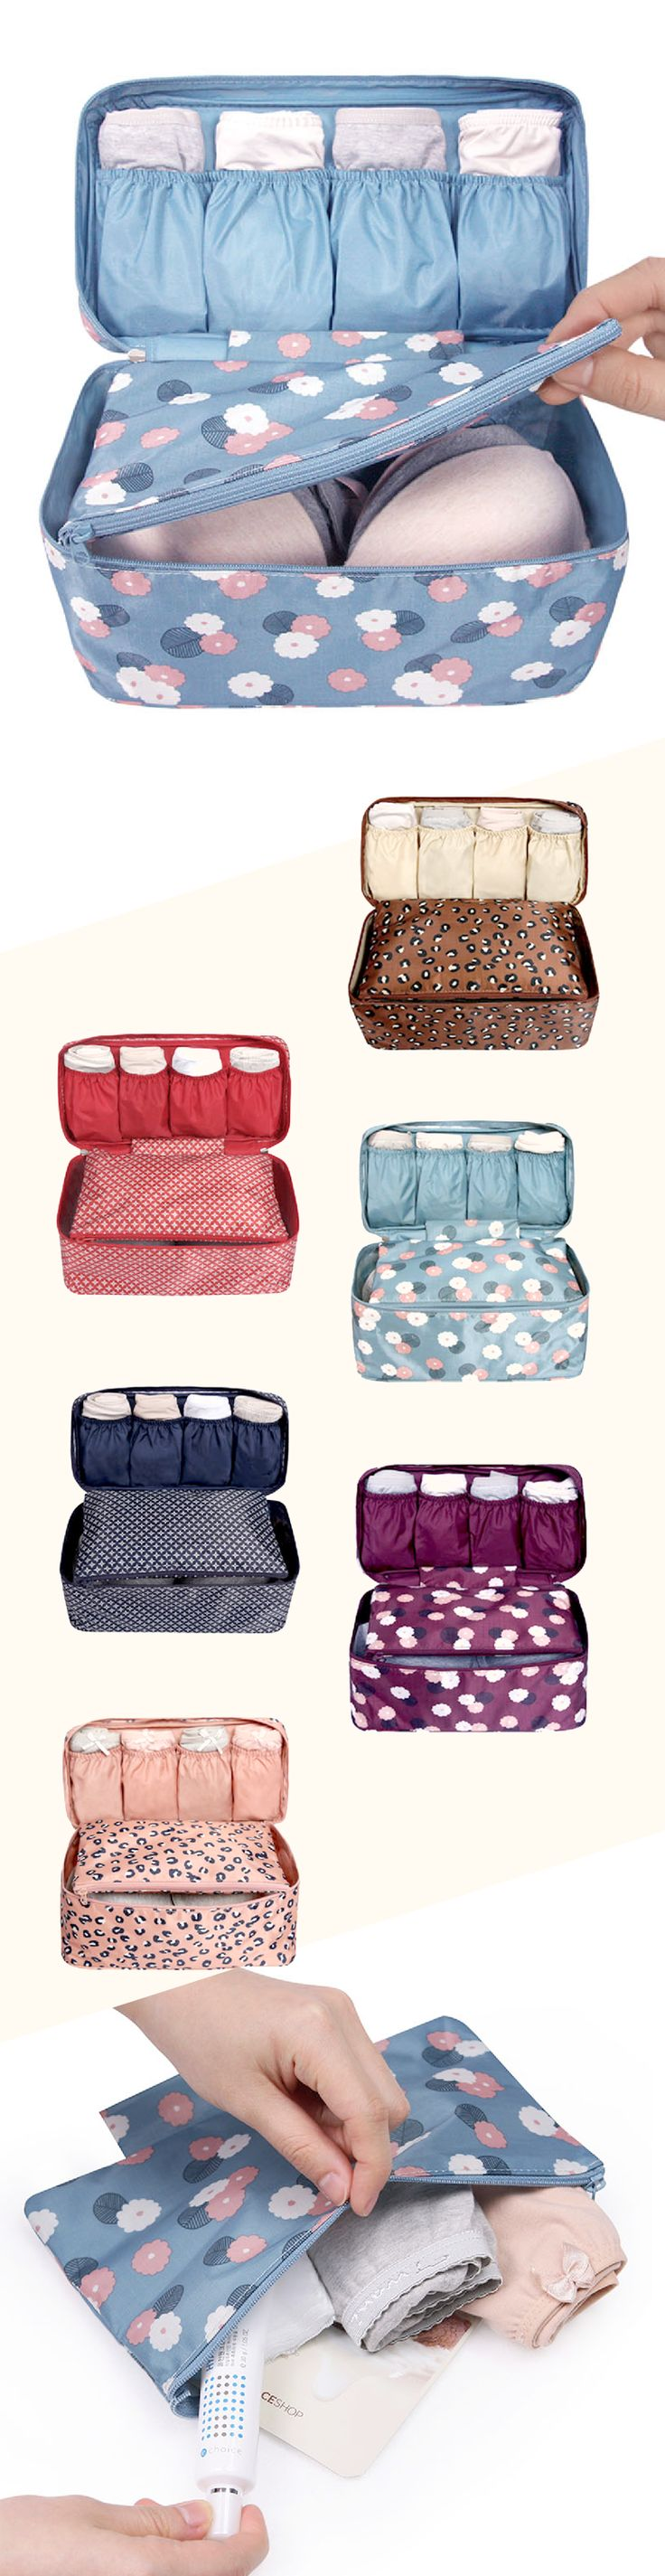 These underwear pouches are so cute! Keep your underwear and bras all in one, organized place while traveling. Fits 4-6 underwear and 4-6 bras!